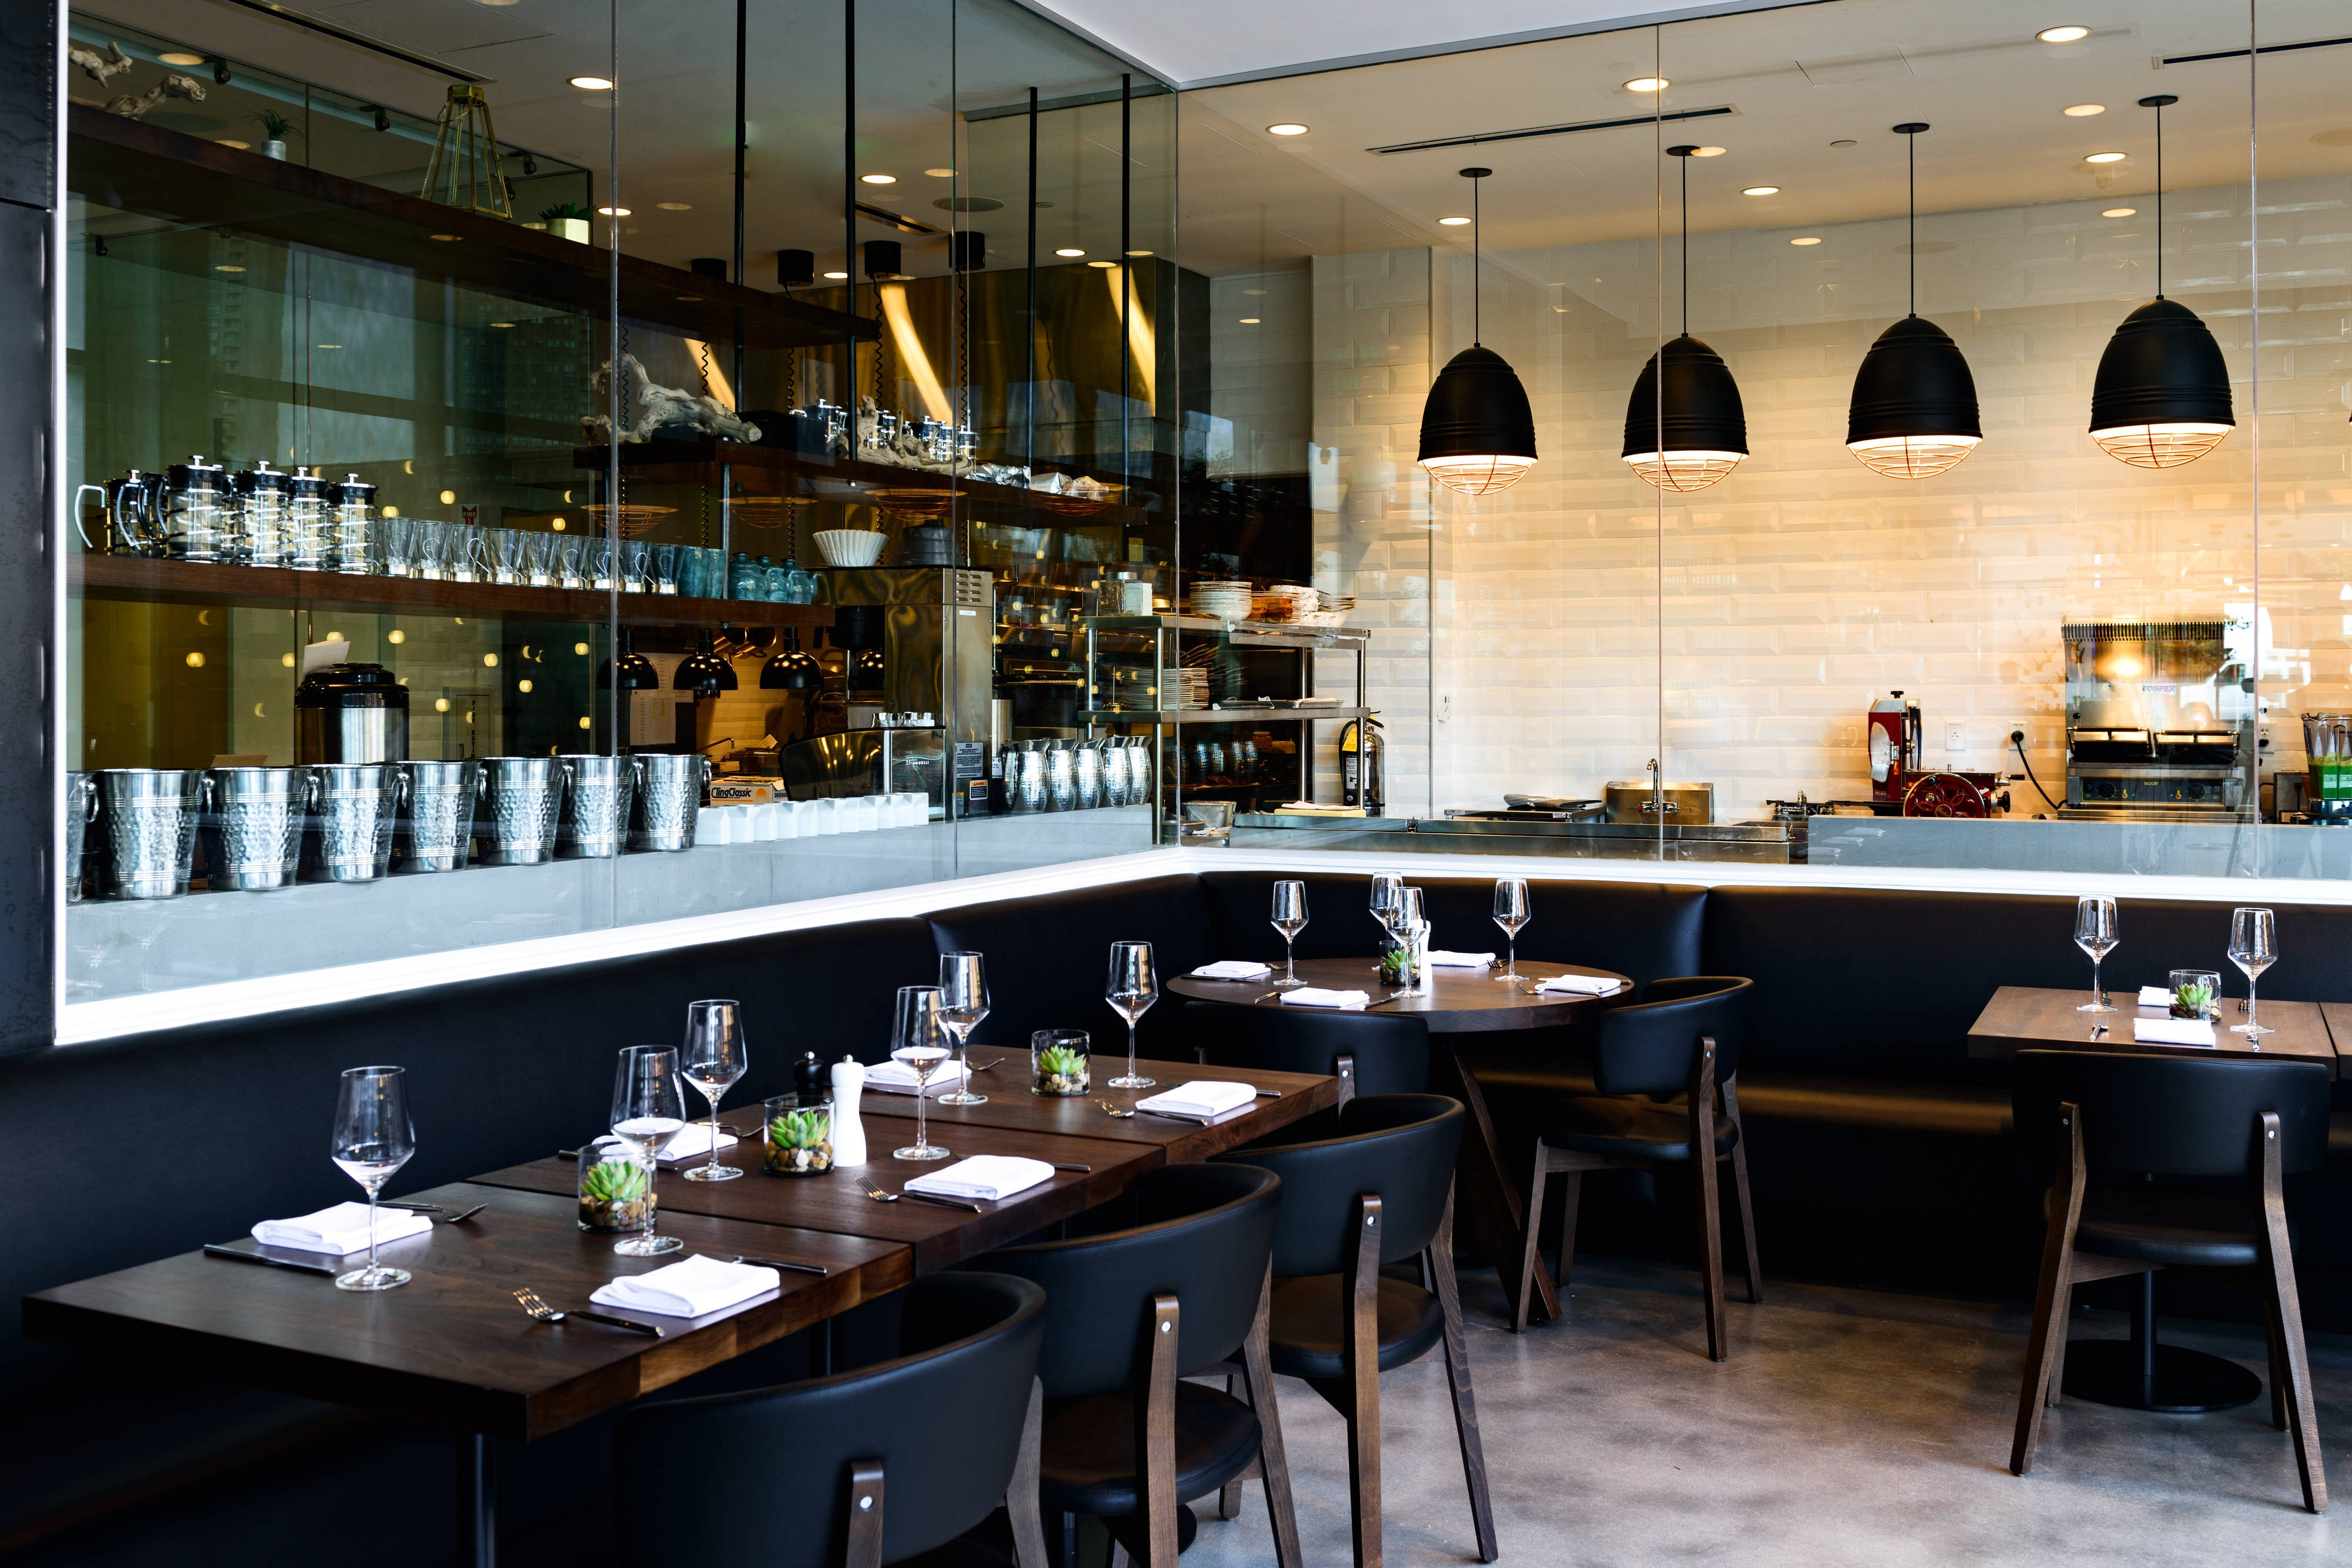 The Envoy Hotel - OUTLOOK Kitchen + Bar - Garde Manger Station